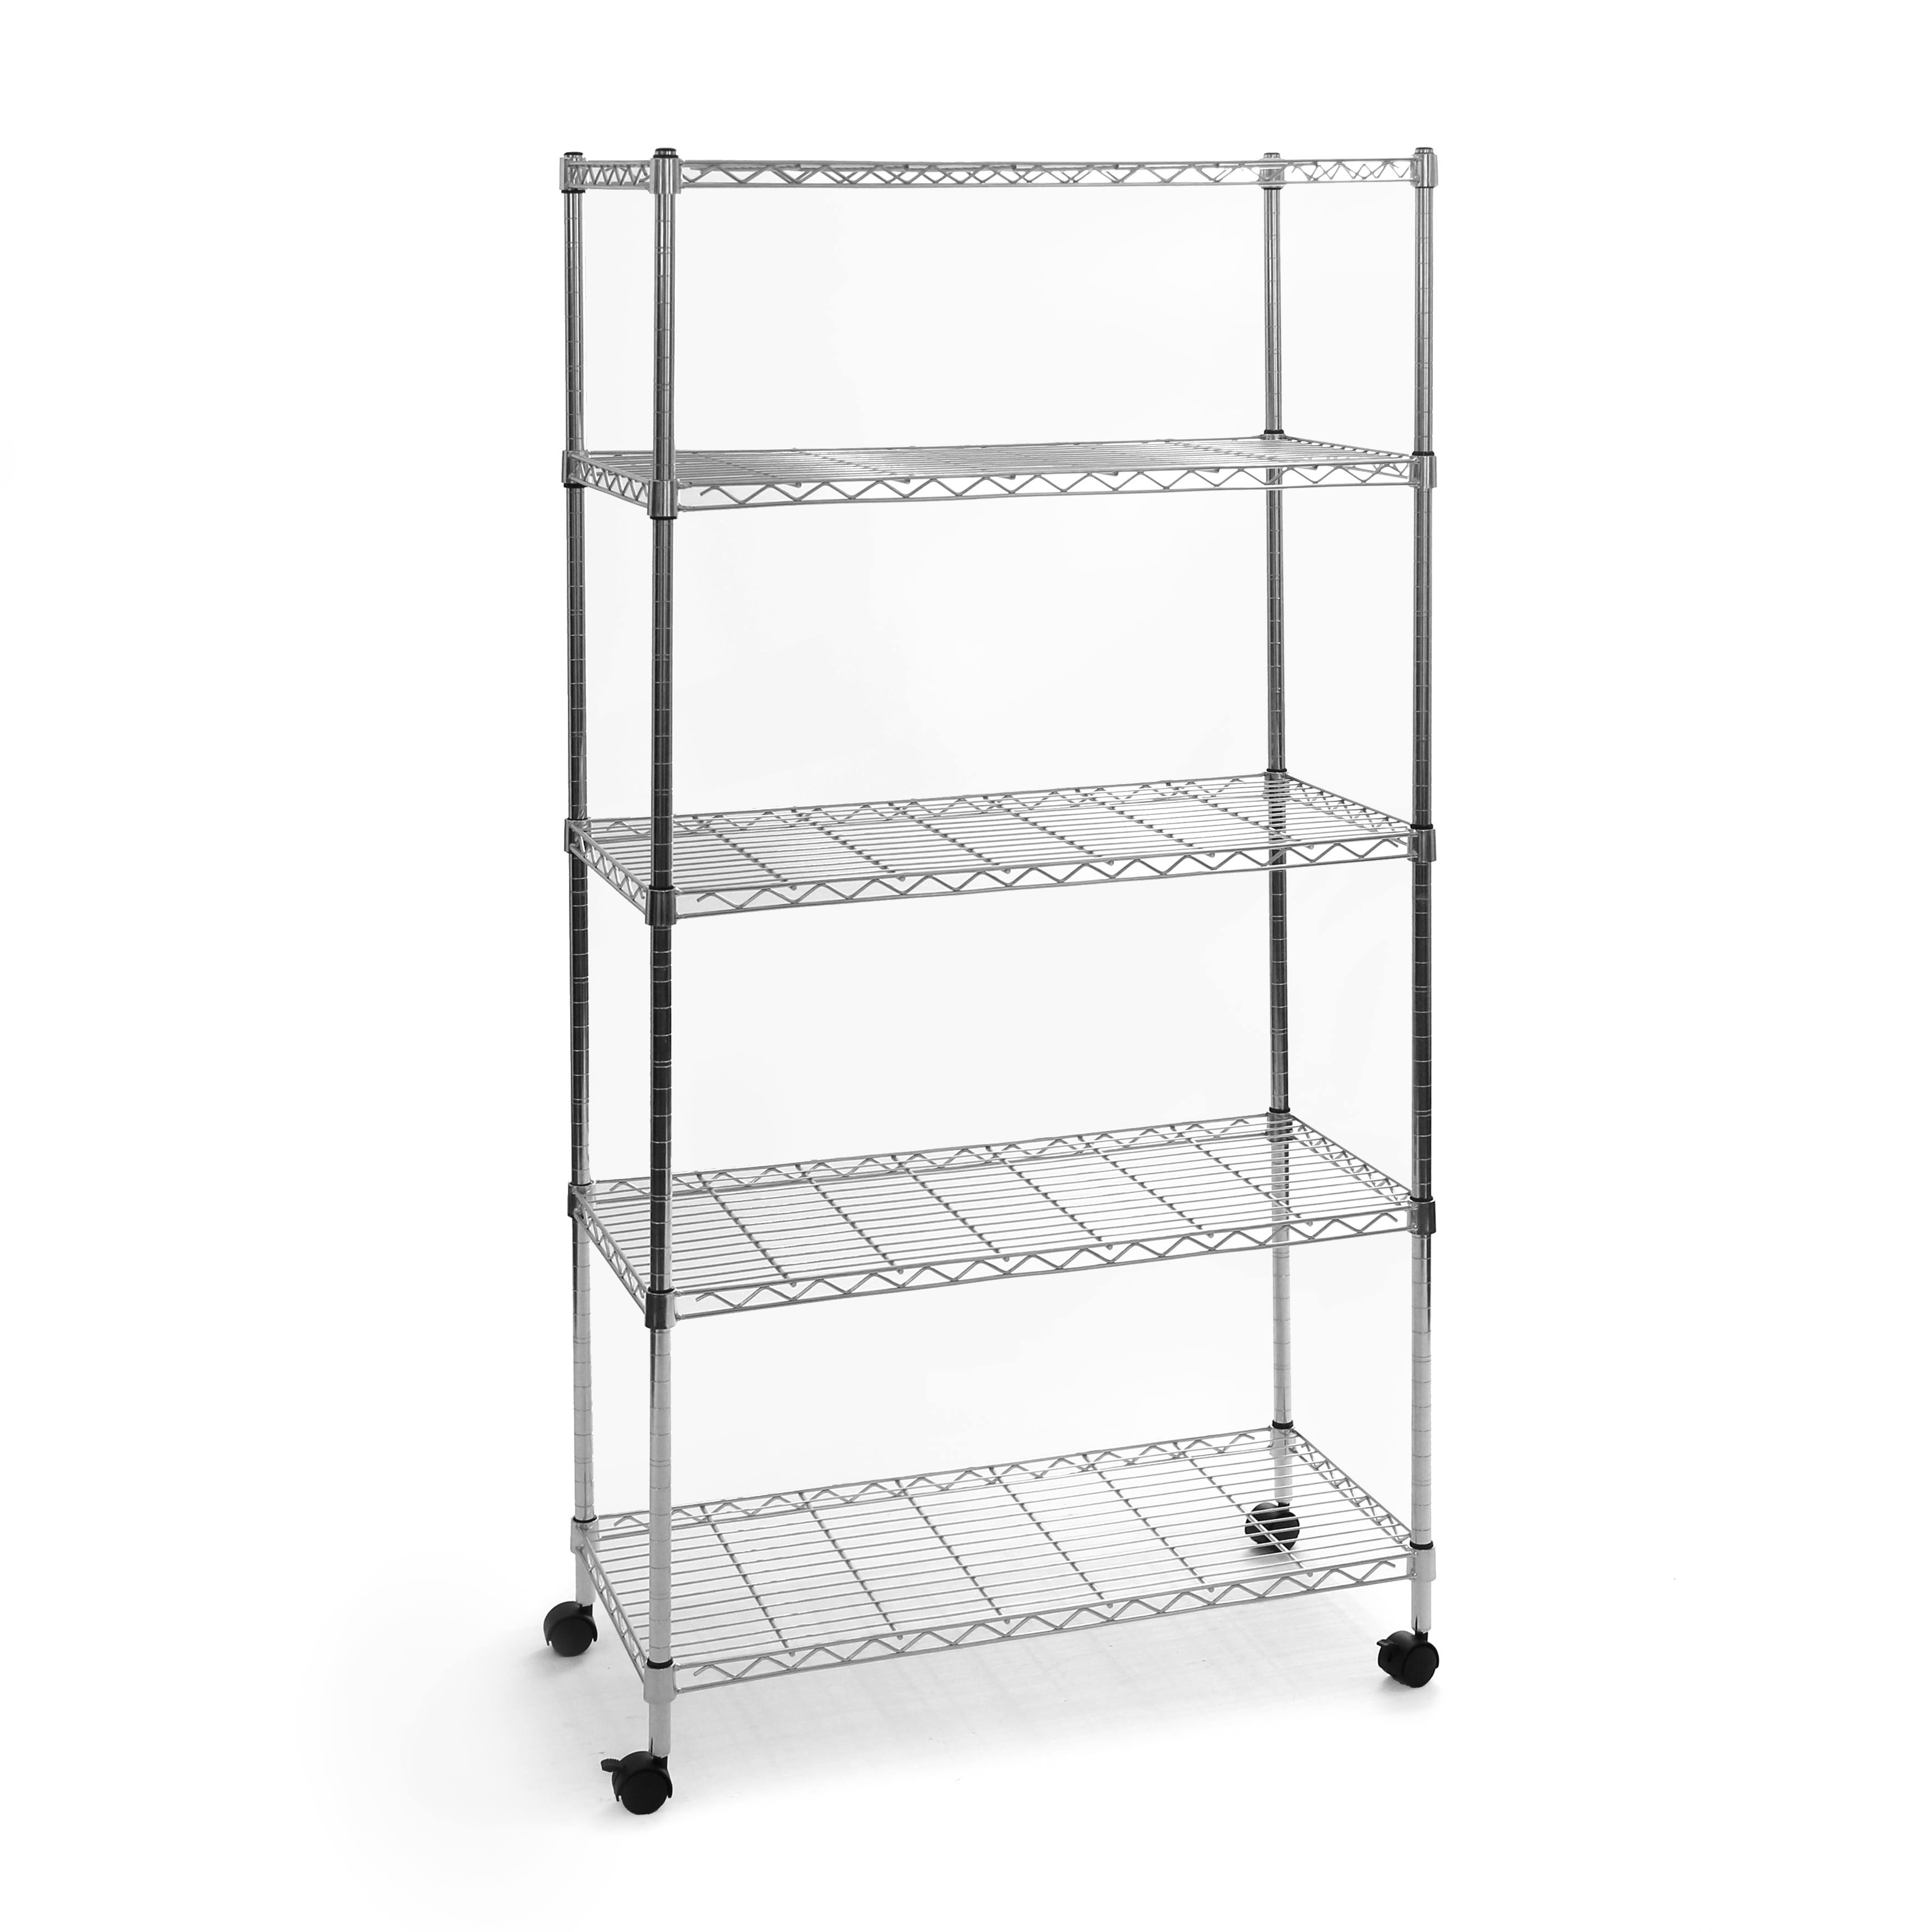 "Seville Classics 14""D x 30""W x 60""H 5-Tier Steel Wire Shelving System"